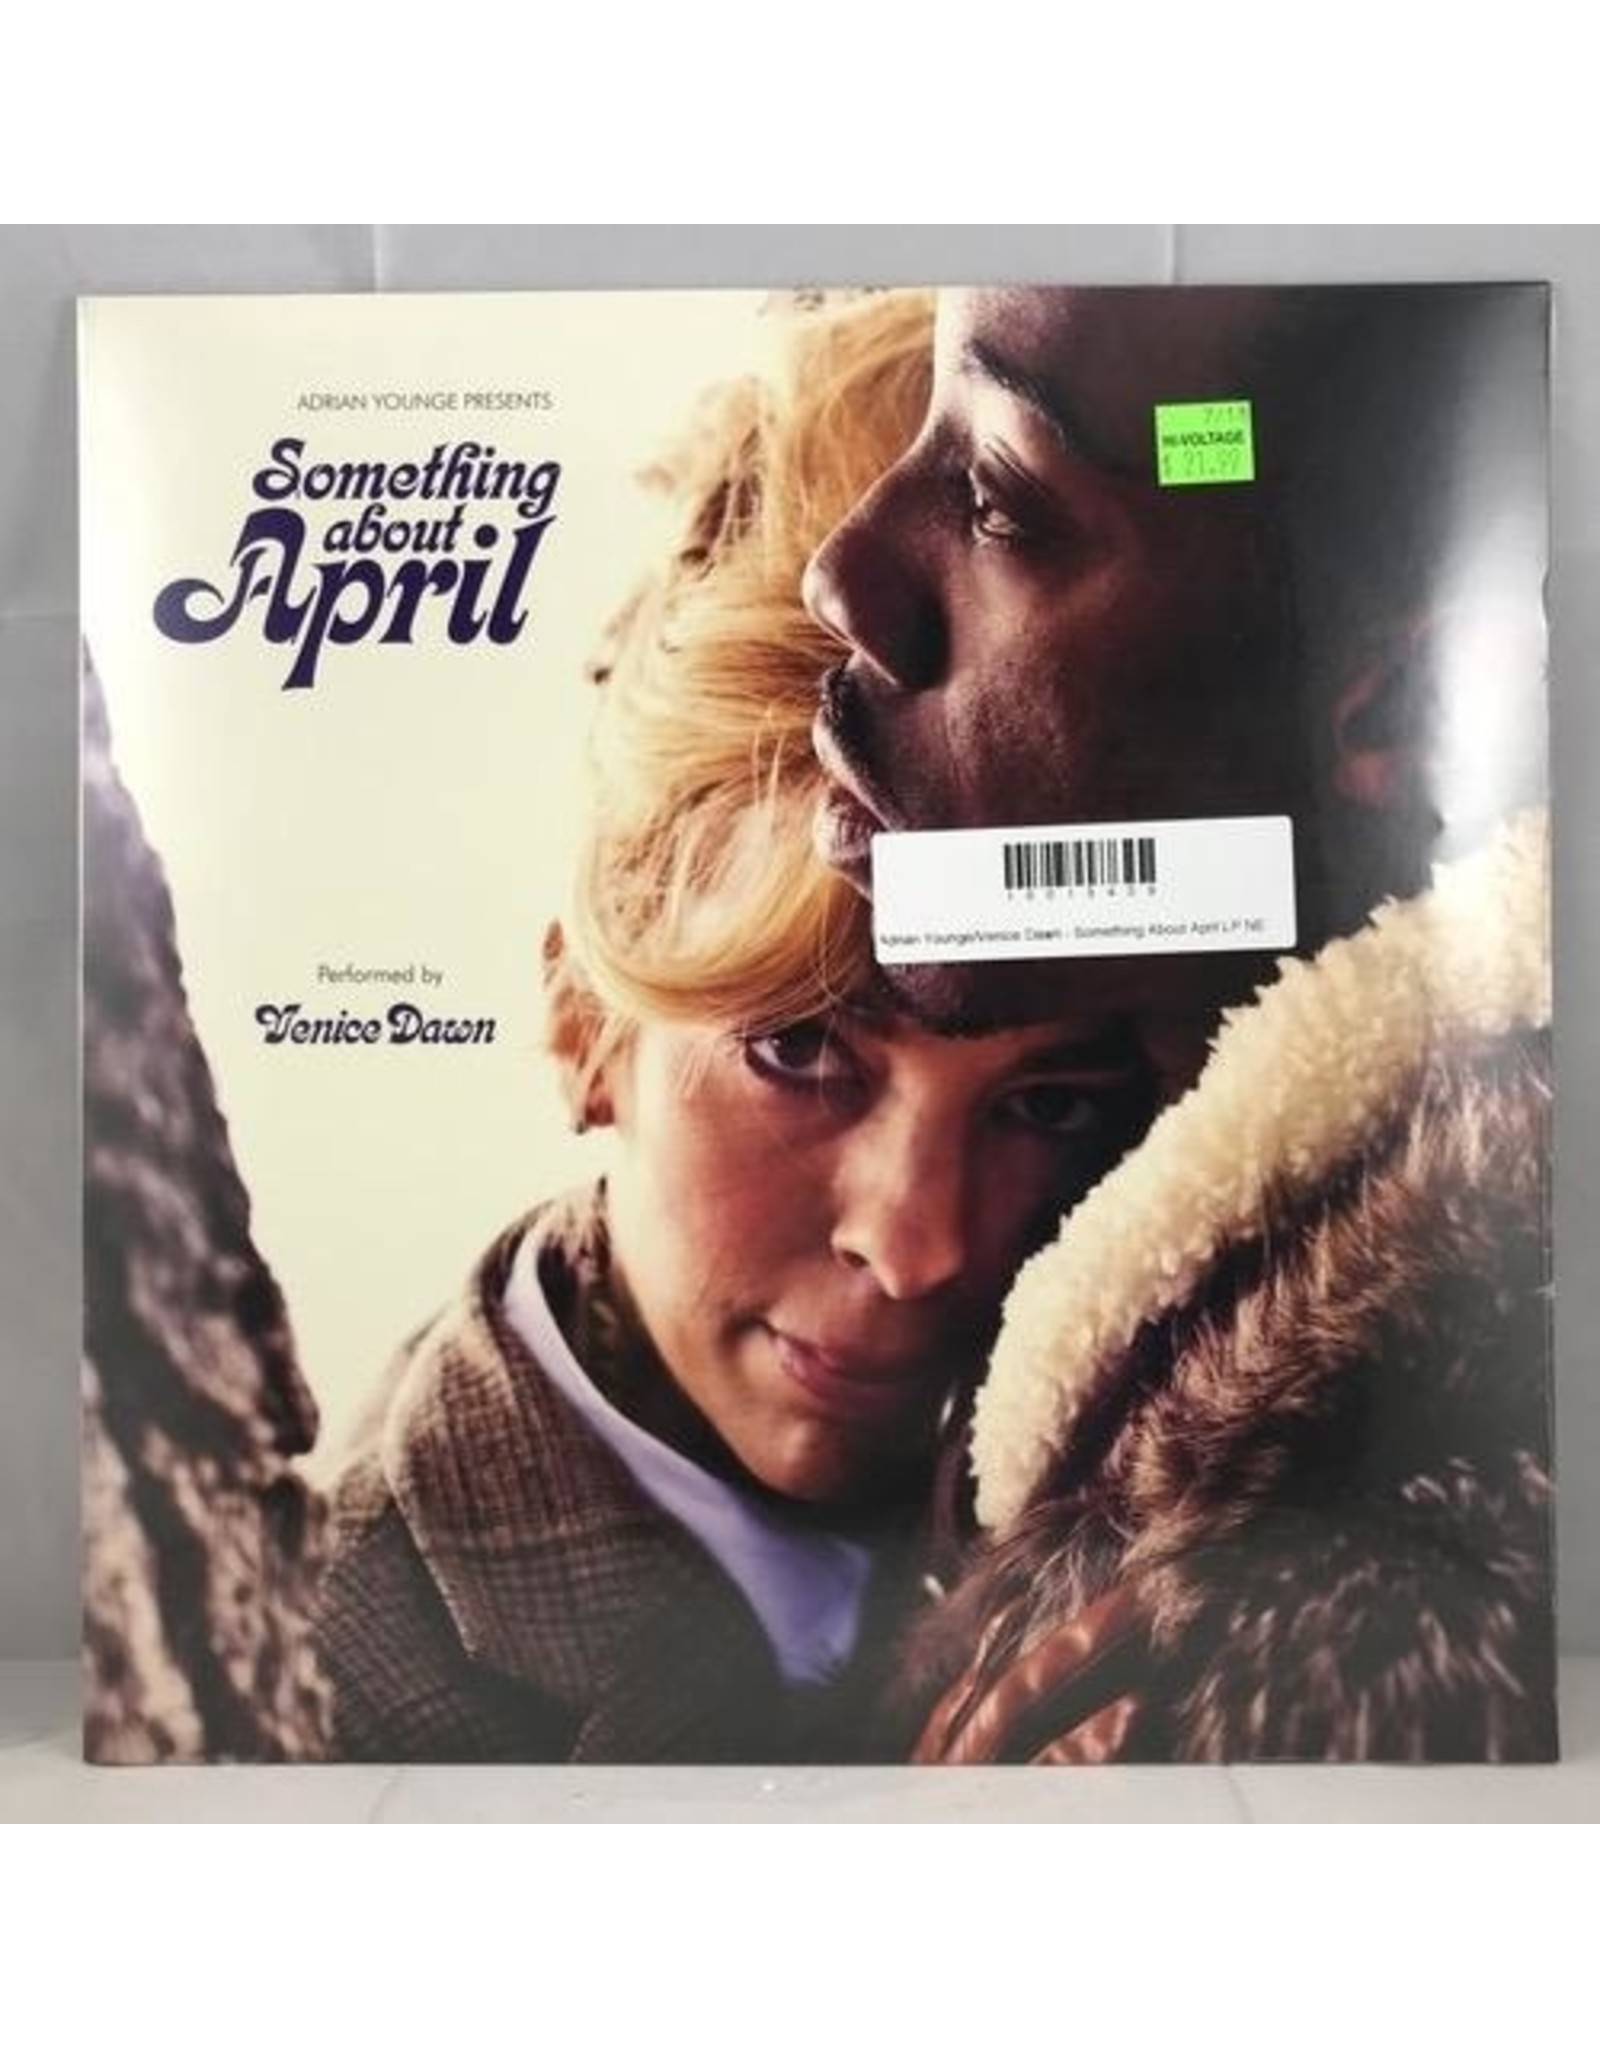 New Vinyl Adrian Younge - Presents Venice Dawn: Something About April LP